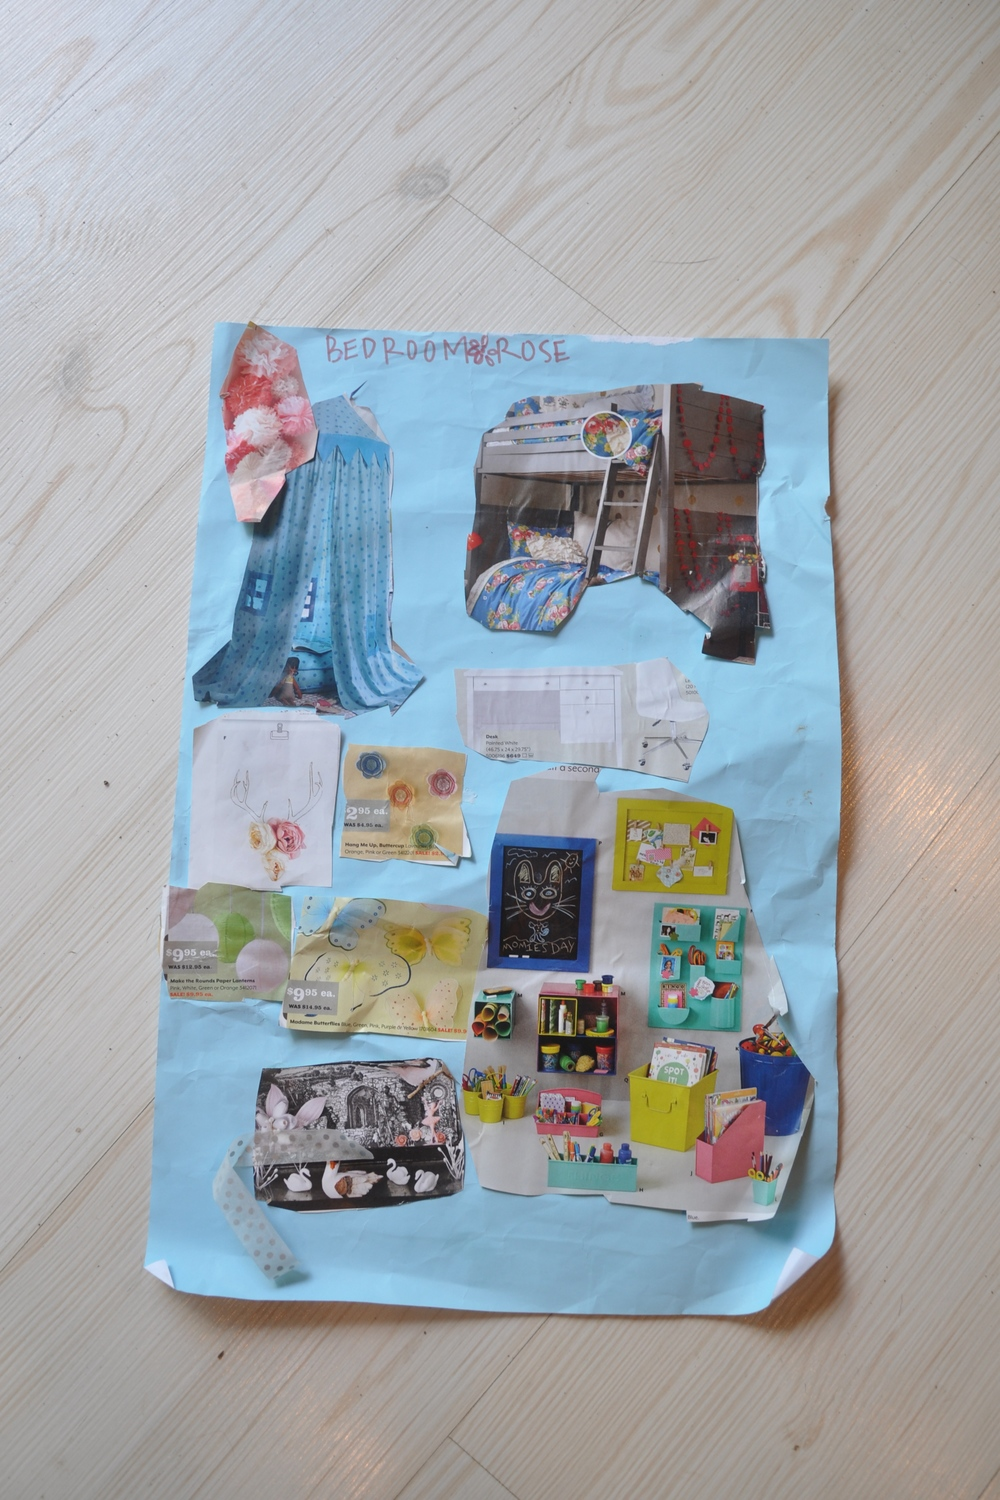 ... and her vision board for her  own bedroom redesign. The apple doesn't fall far from the tree!